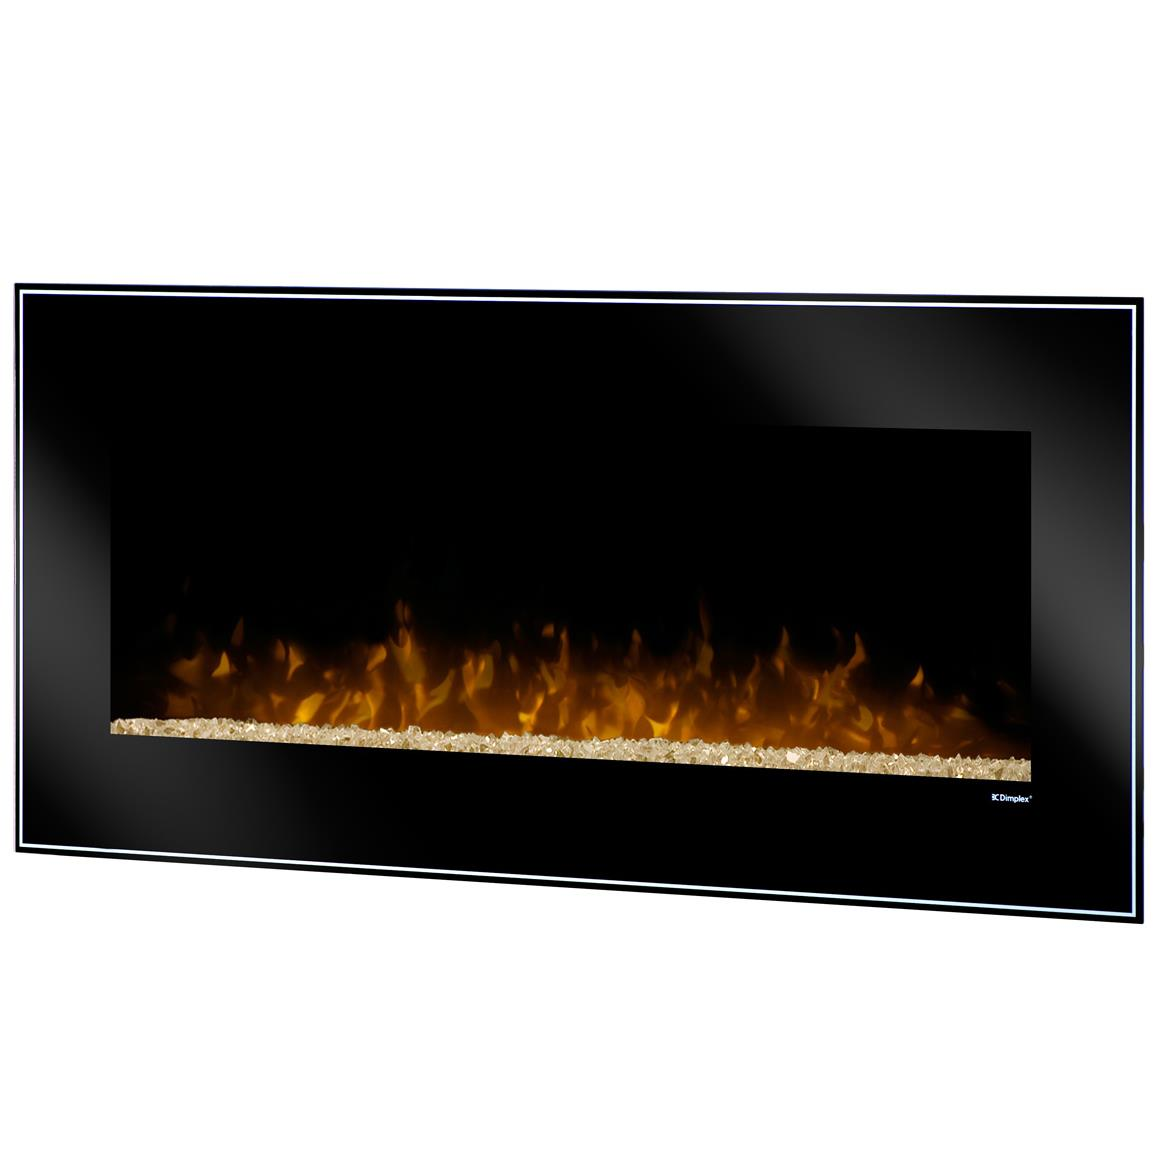 Wall Mount Fireplaces Dusk by Dimplex at Jordan's Home Furnishings